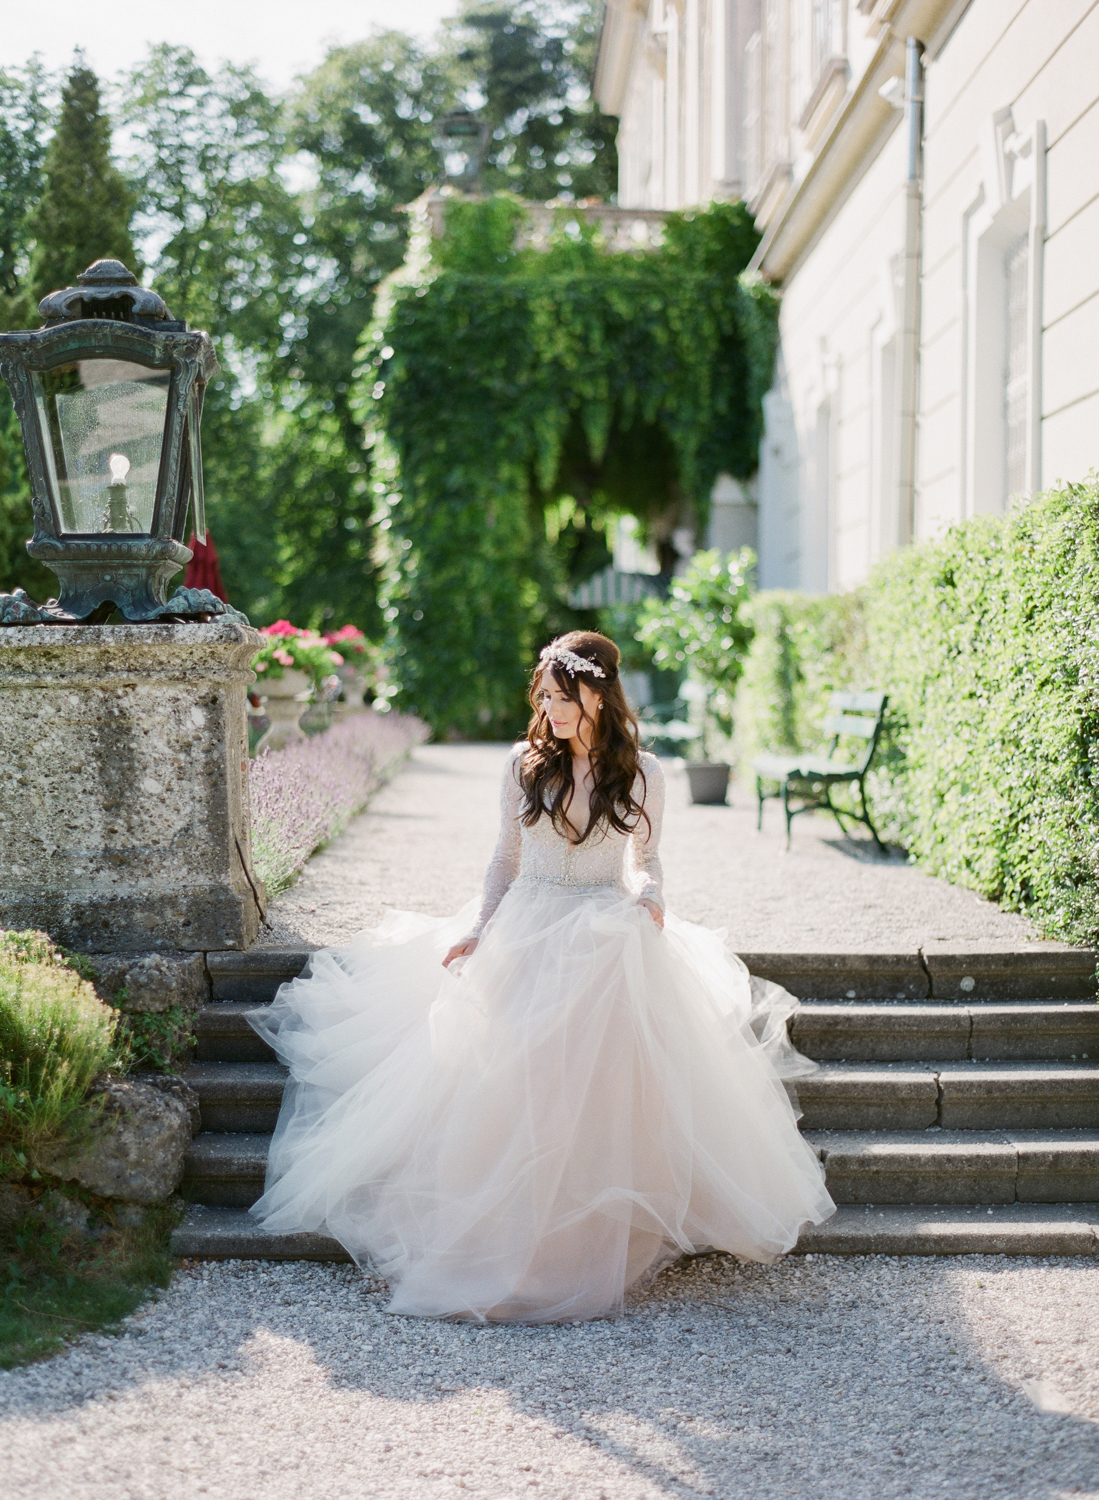 lake_como_wedding_photographer_nikol_bodnarova_197.JPG